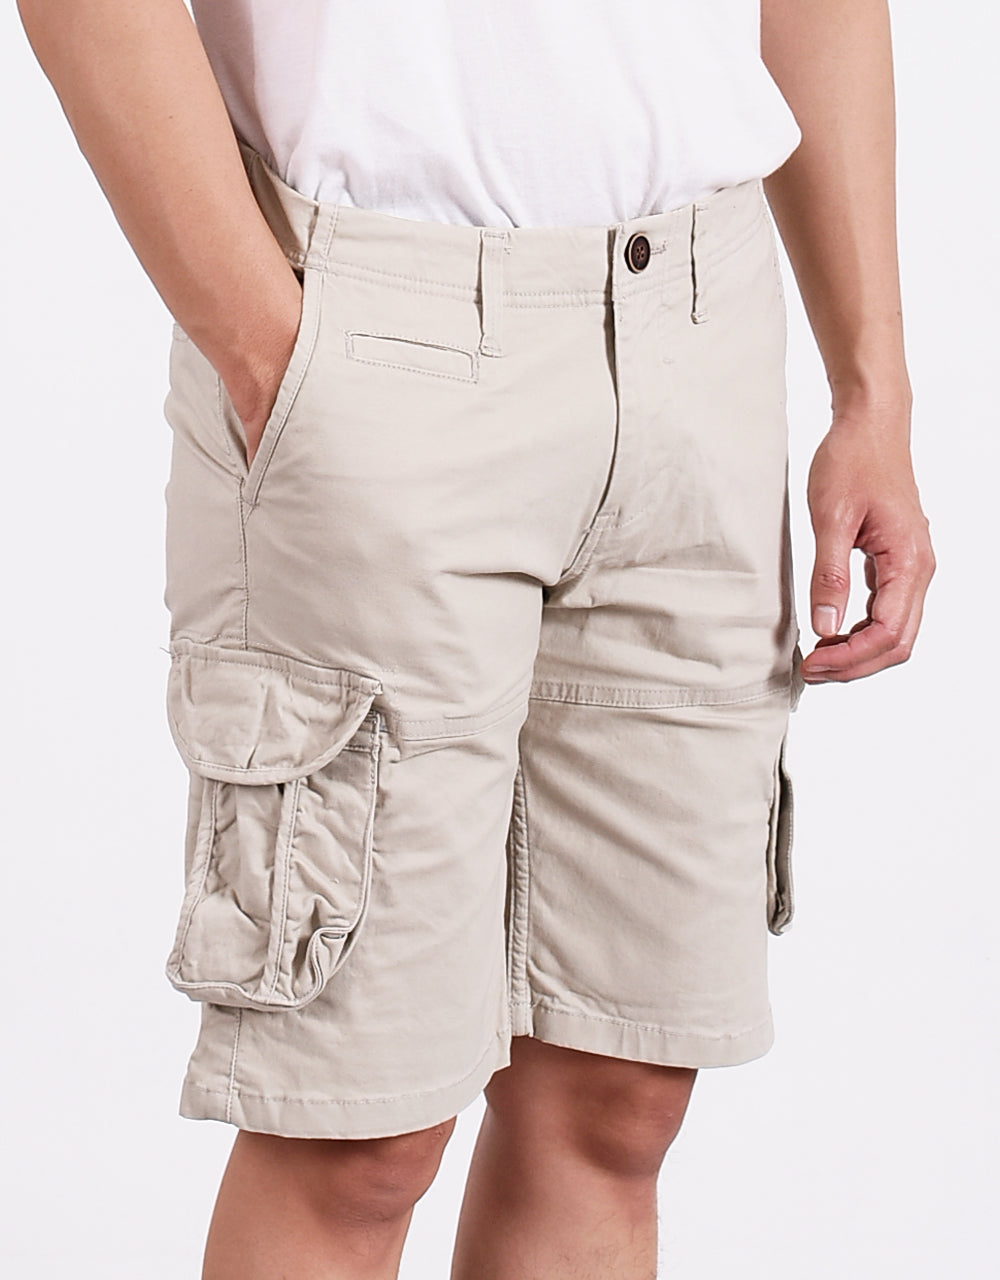 Decoton 2.347 Cargo Shorts